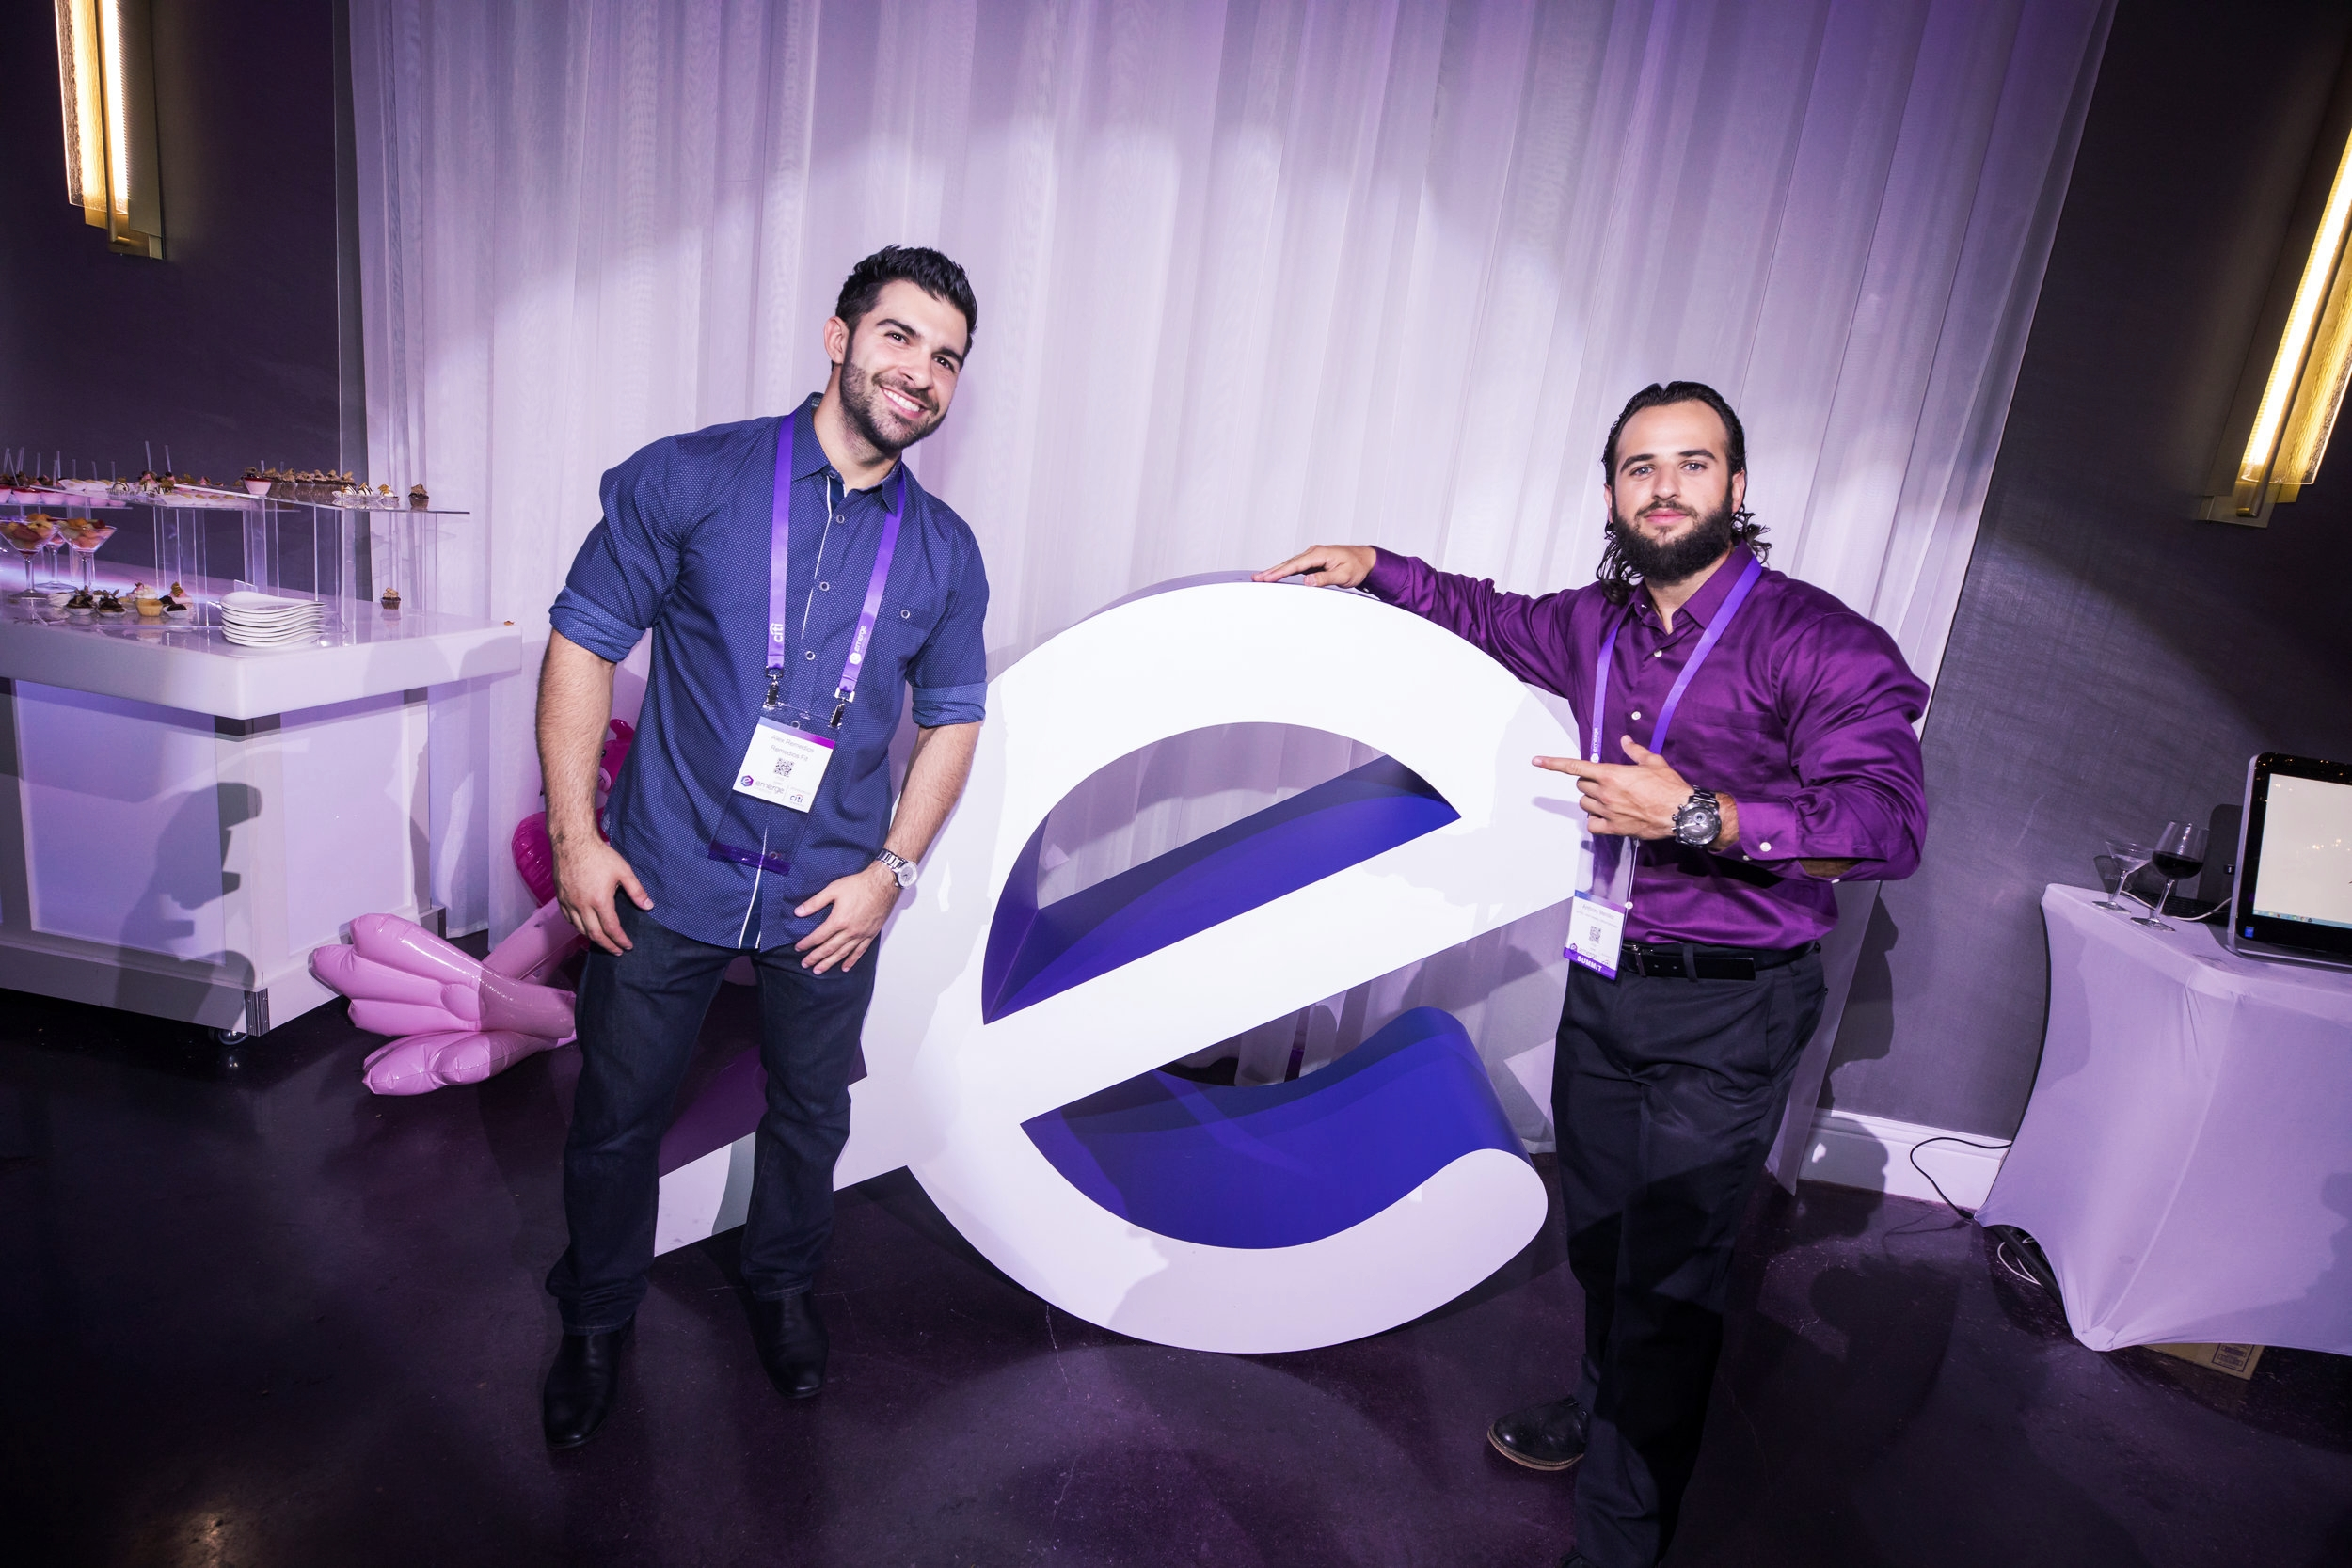 6-11-17 Emerge Opening Party-237-2 2.jpg